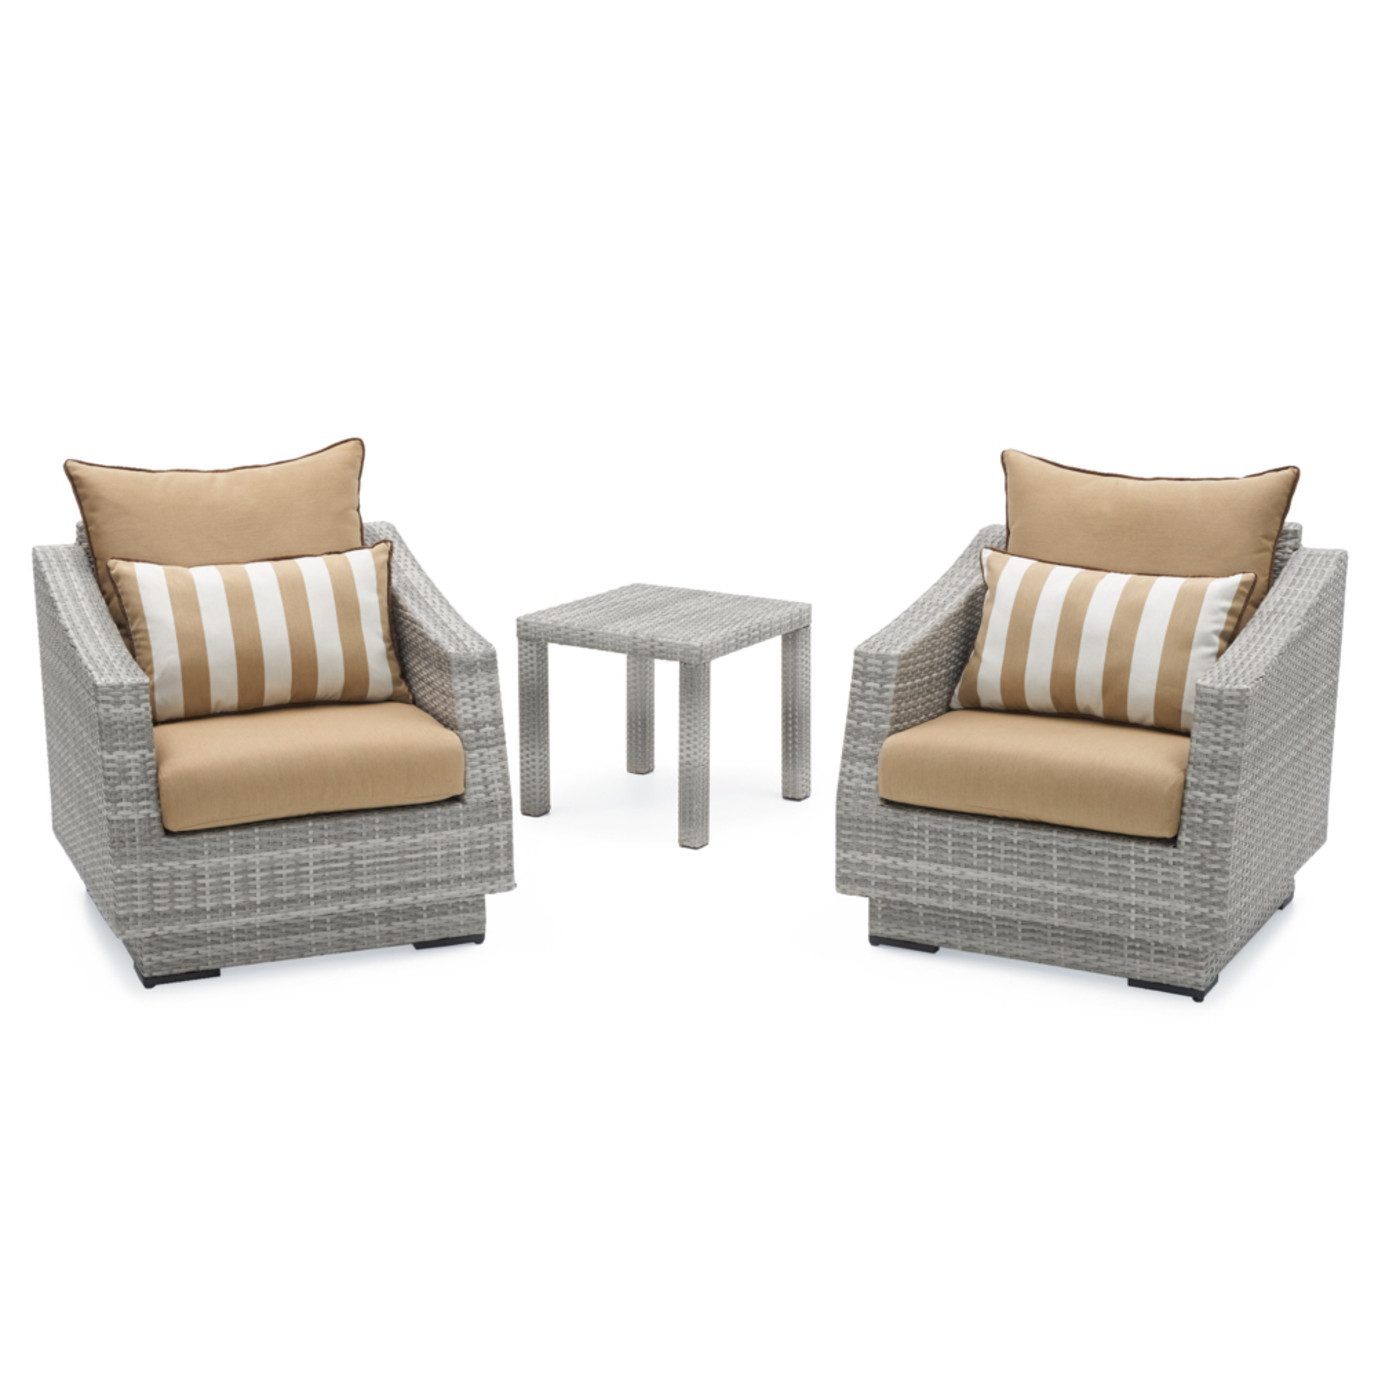 Cannes™ Club Chairs & Side Table - Maxim Beige